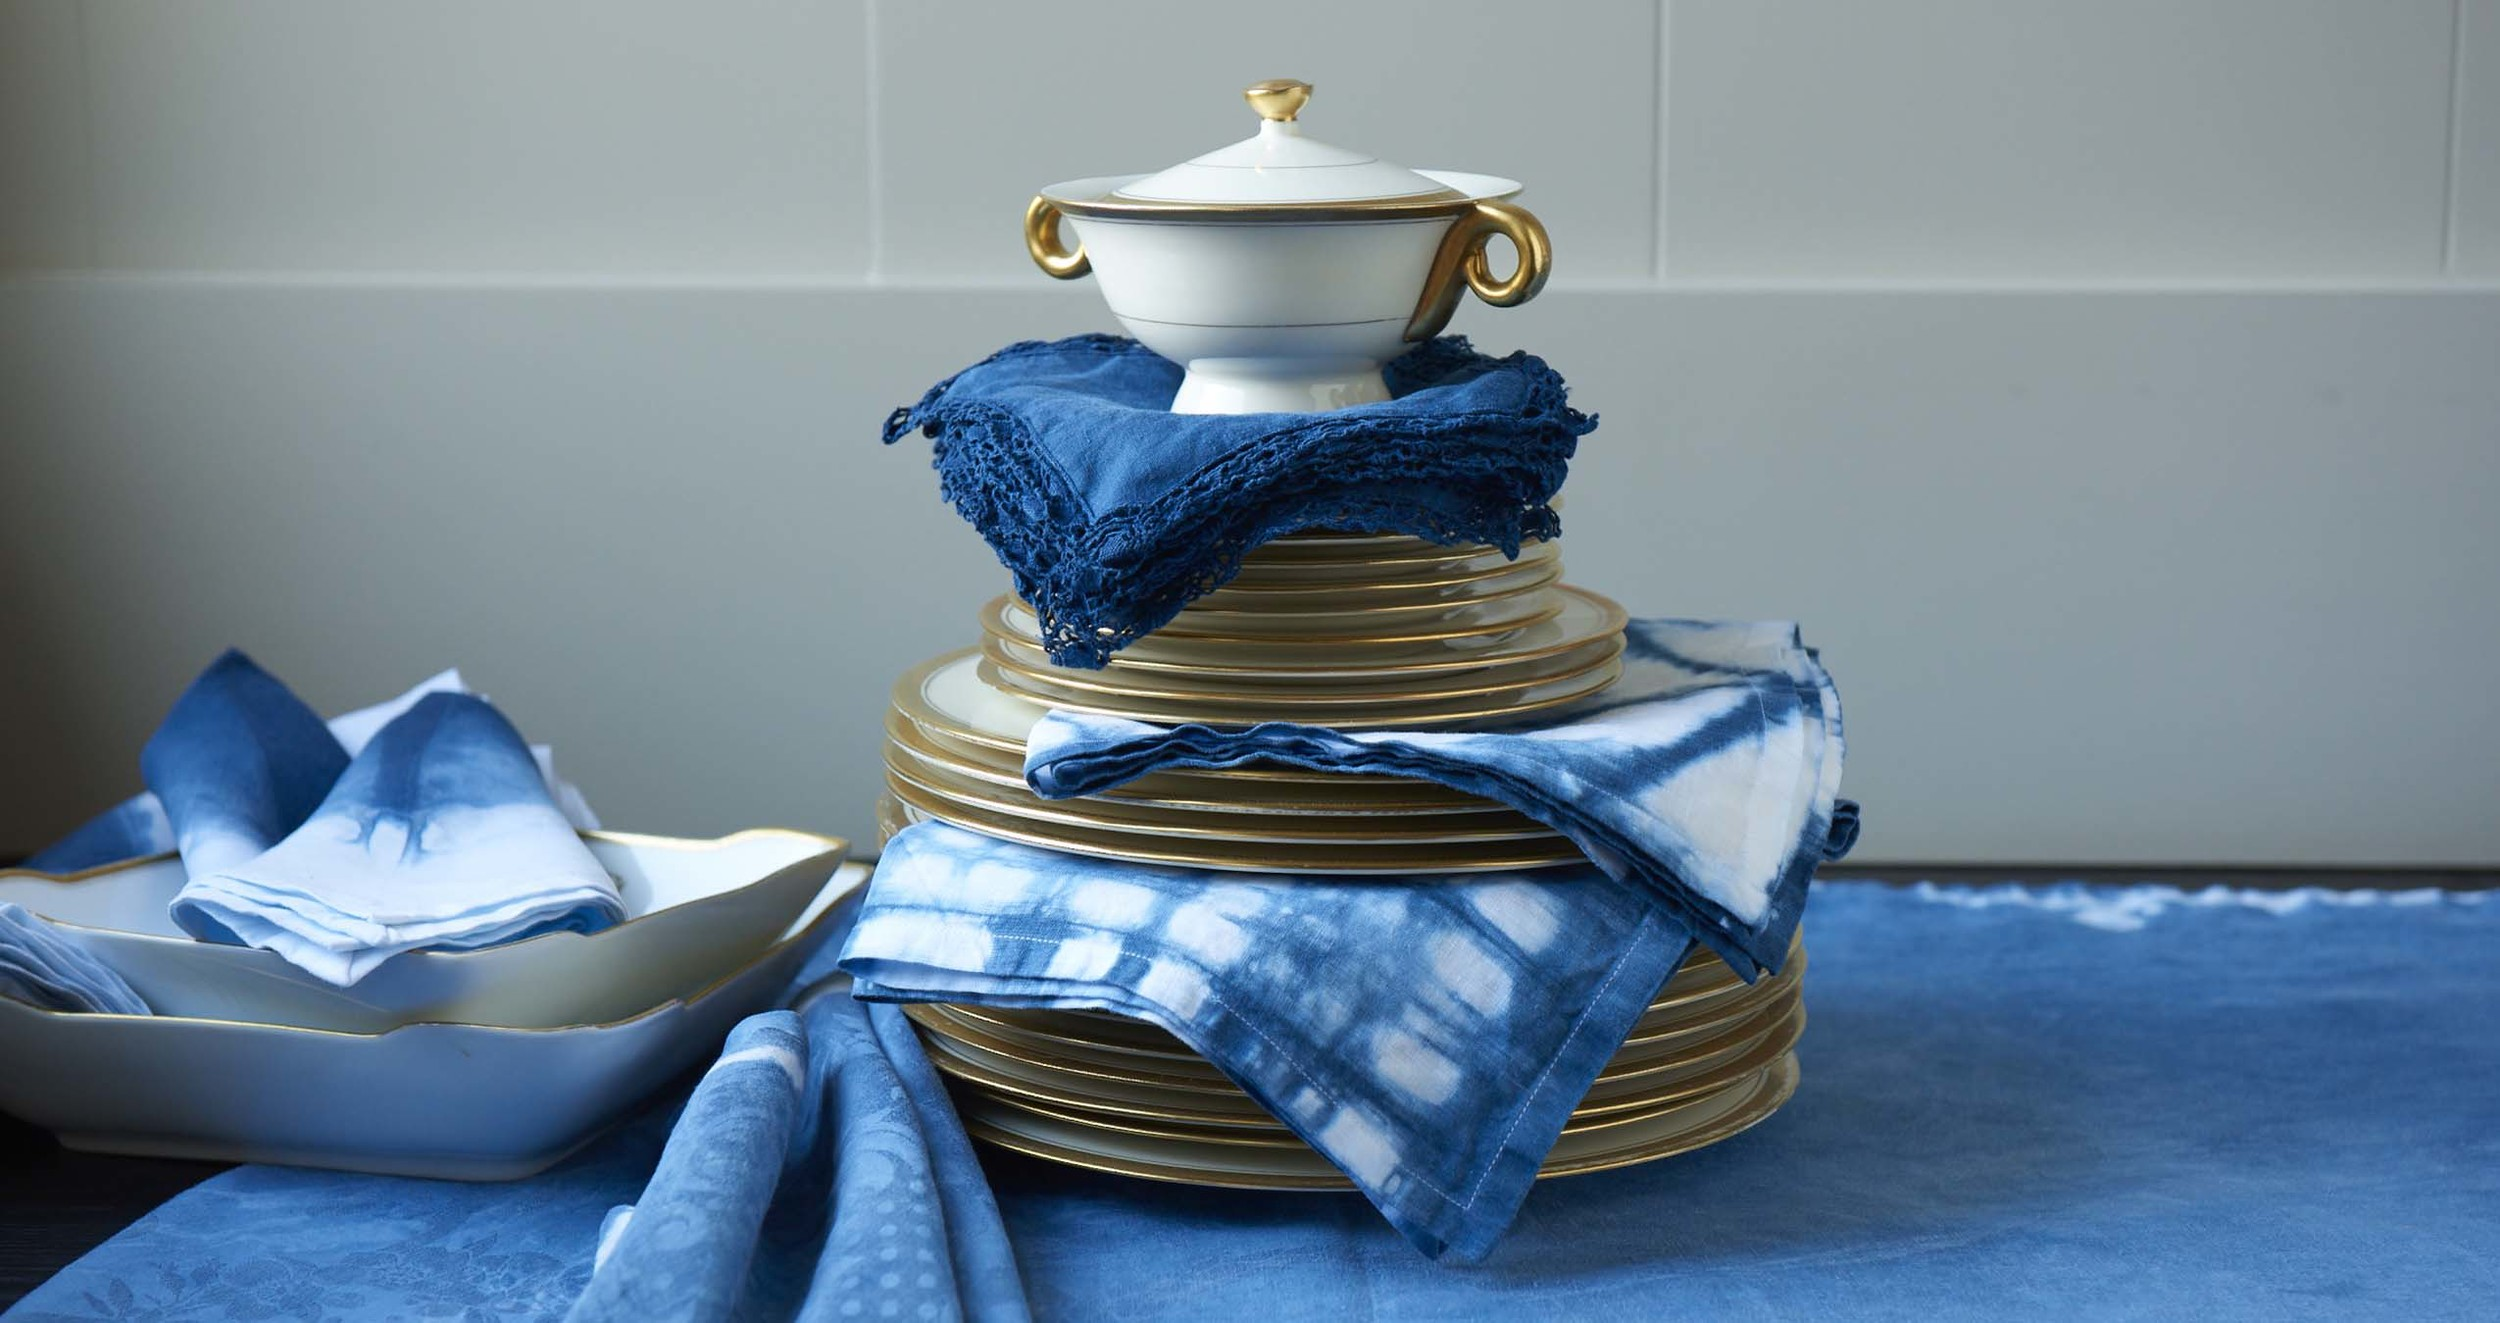 Custom Dyed Table Linens  - An original collection of hand-dyed napkins & tablecloths using traditional indigo dye techniques over new and vintage pieces.